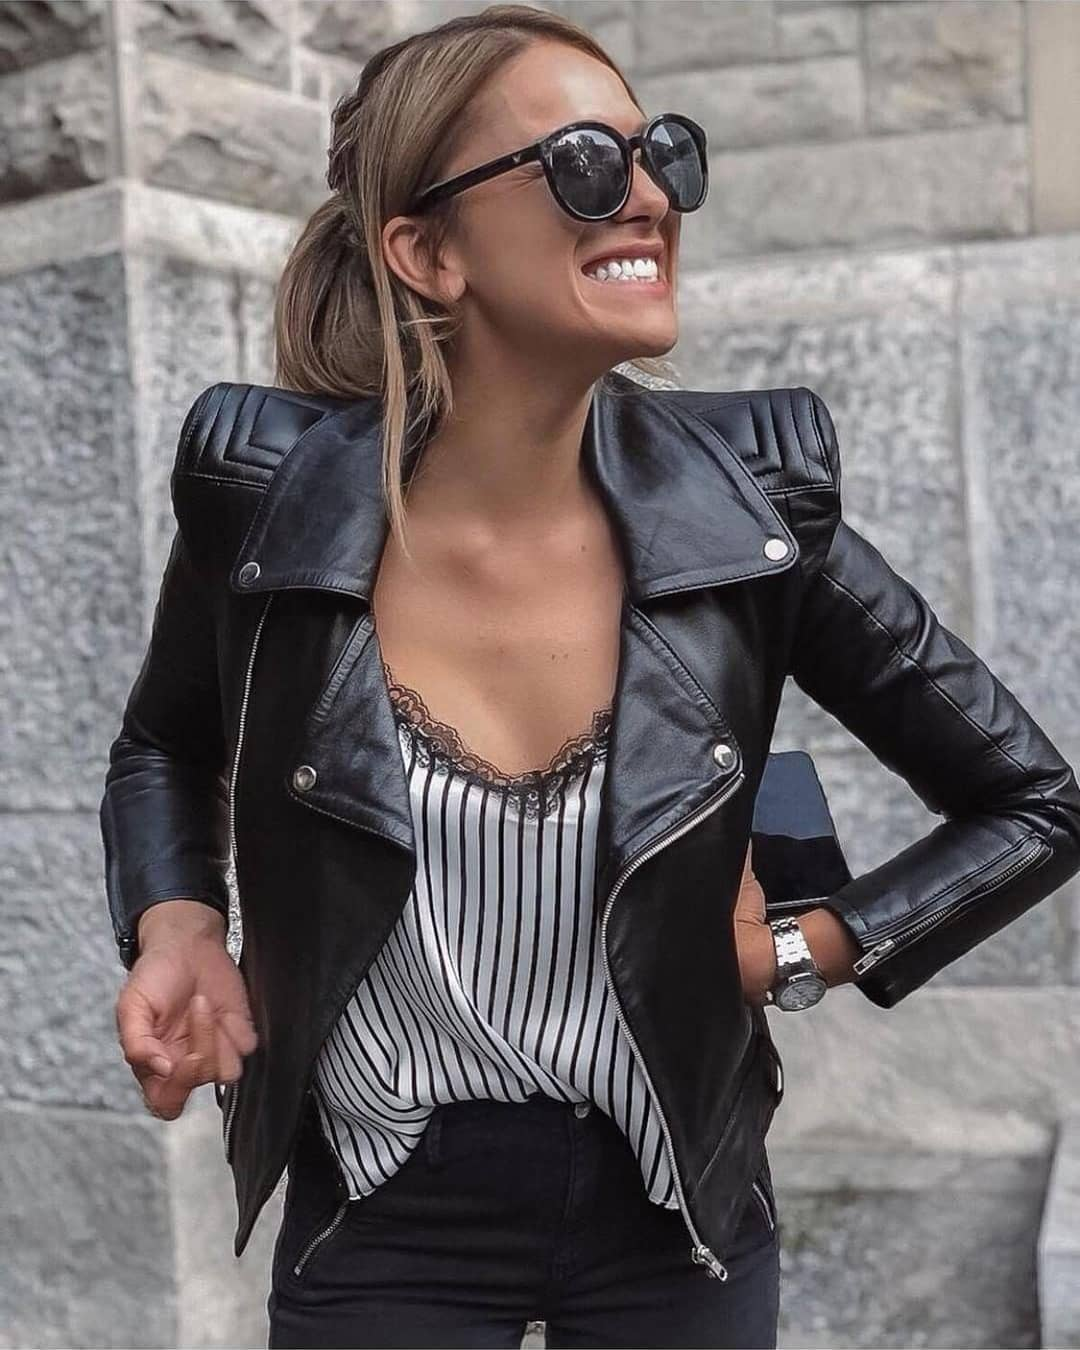 Can I Wear Black White Pinstripe Slip Top And Black Leather Jacket This Summer 2021